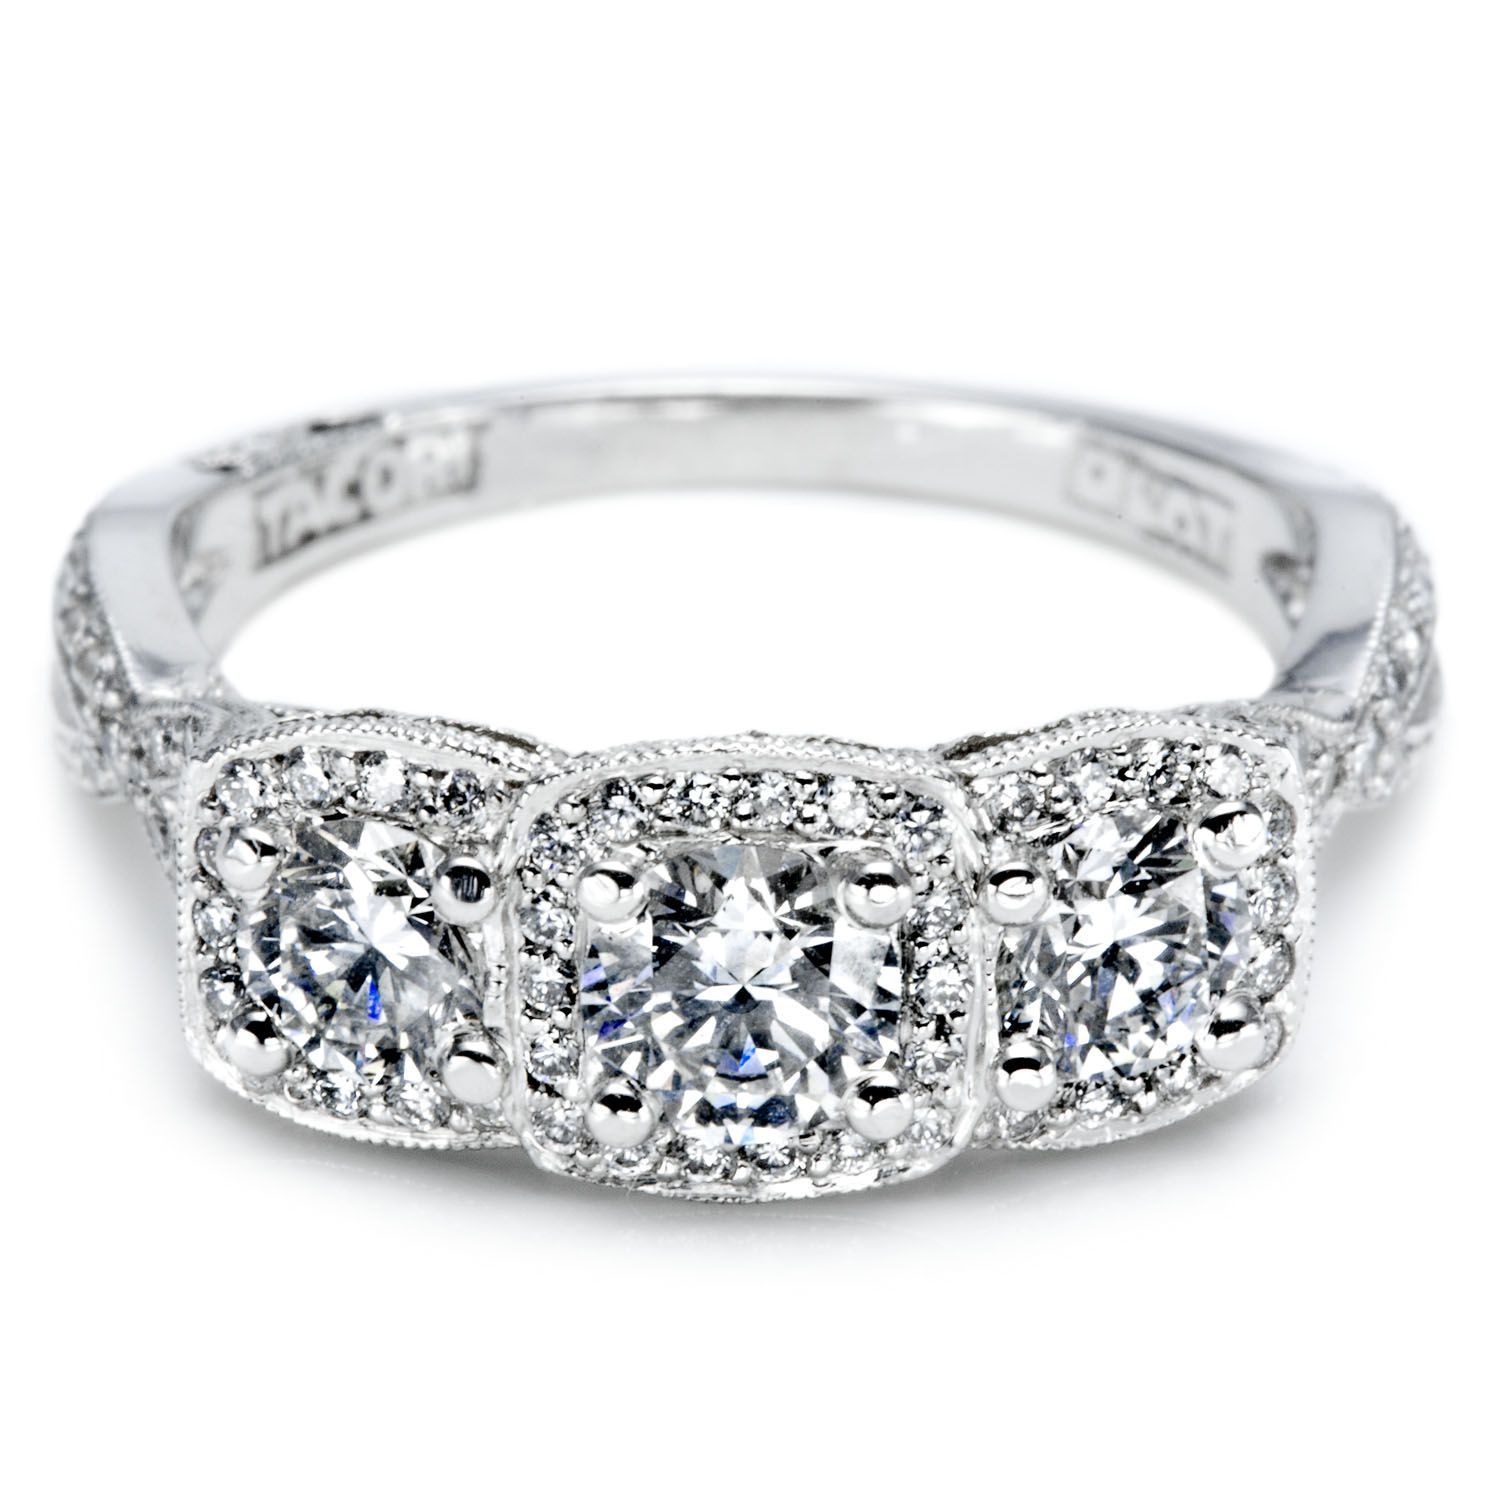 Unique Diamond Anniversary Rings | View Some Examples Of With Regard To Most Up To Date Diamond Accent Vintage Style Anniversary Bands In White Gold (View 3 of 25)